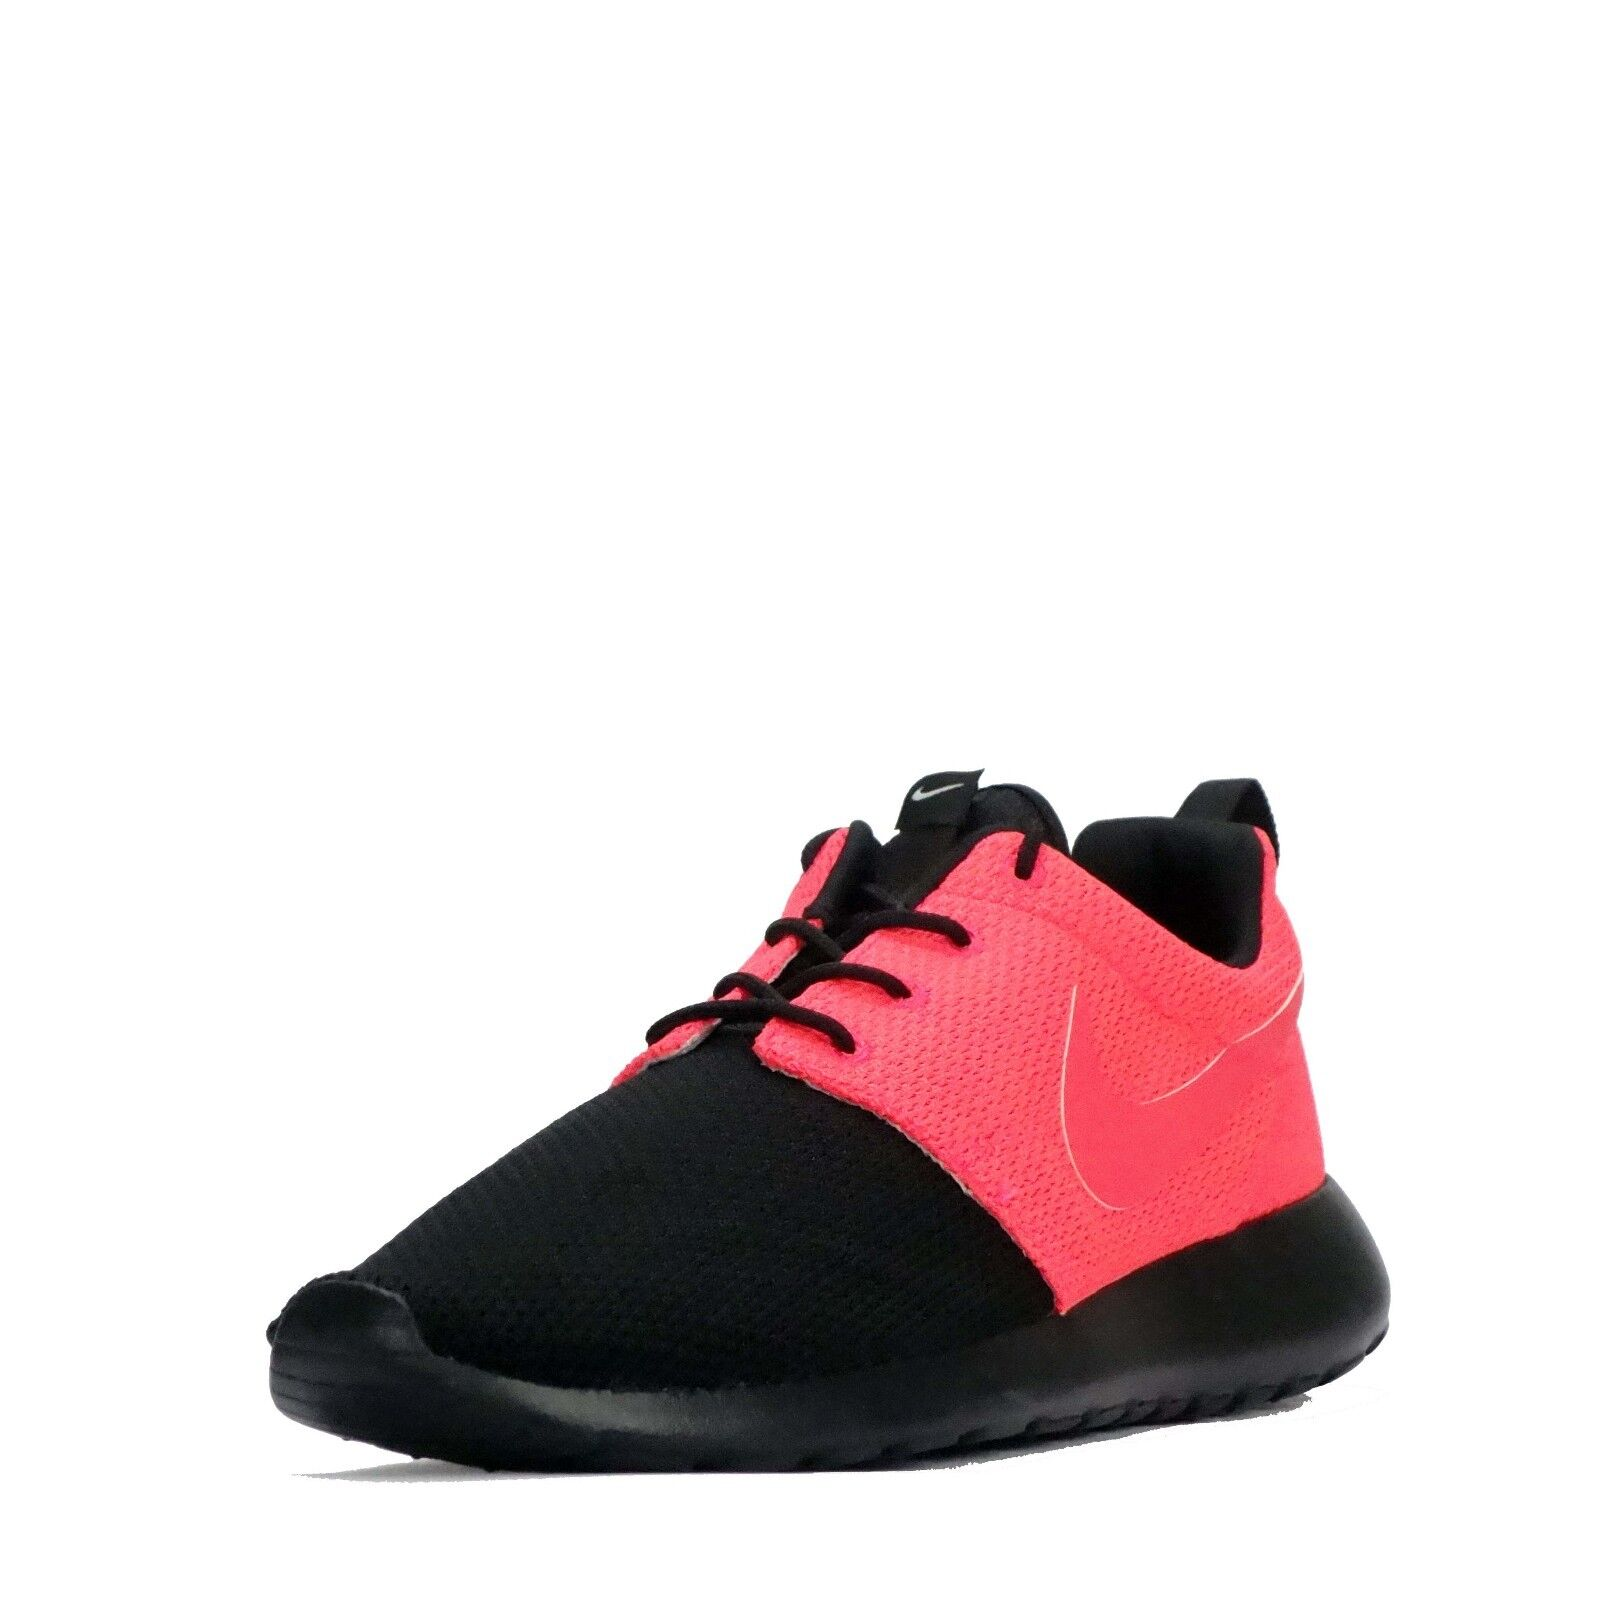 size 40 10bc9 82182 ... Nike ID Roshe One Men s Casual Trainers Trainers Trainers Shoes  Black Solar Red 269150 ...